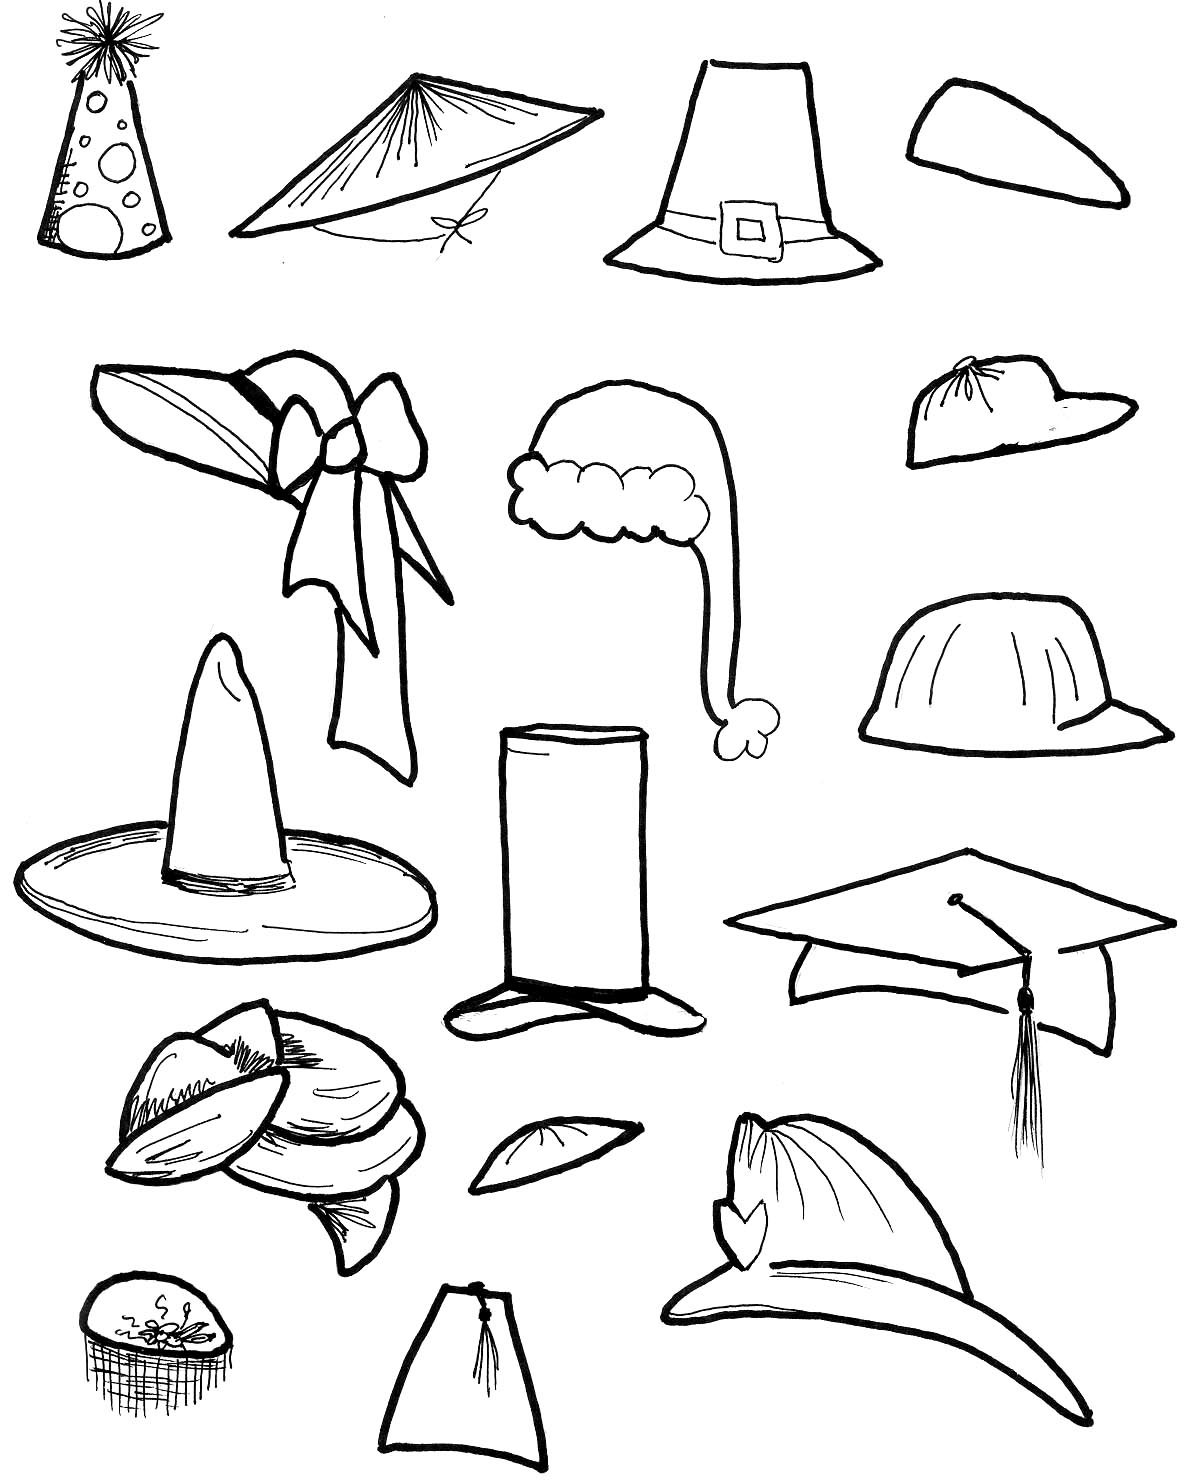 Cowboy Hat Drawing Tutorial At Getdrawings Com Free For Personal